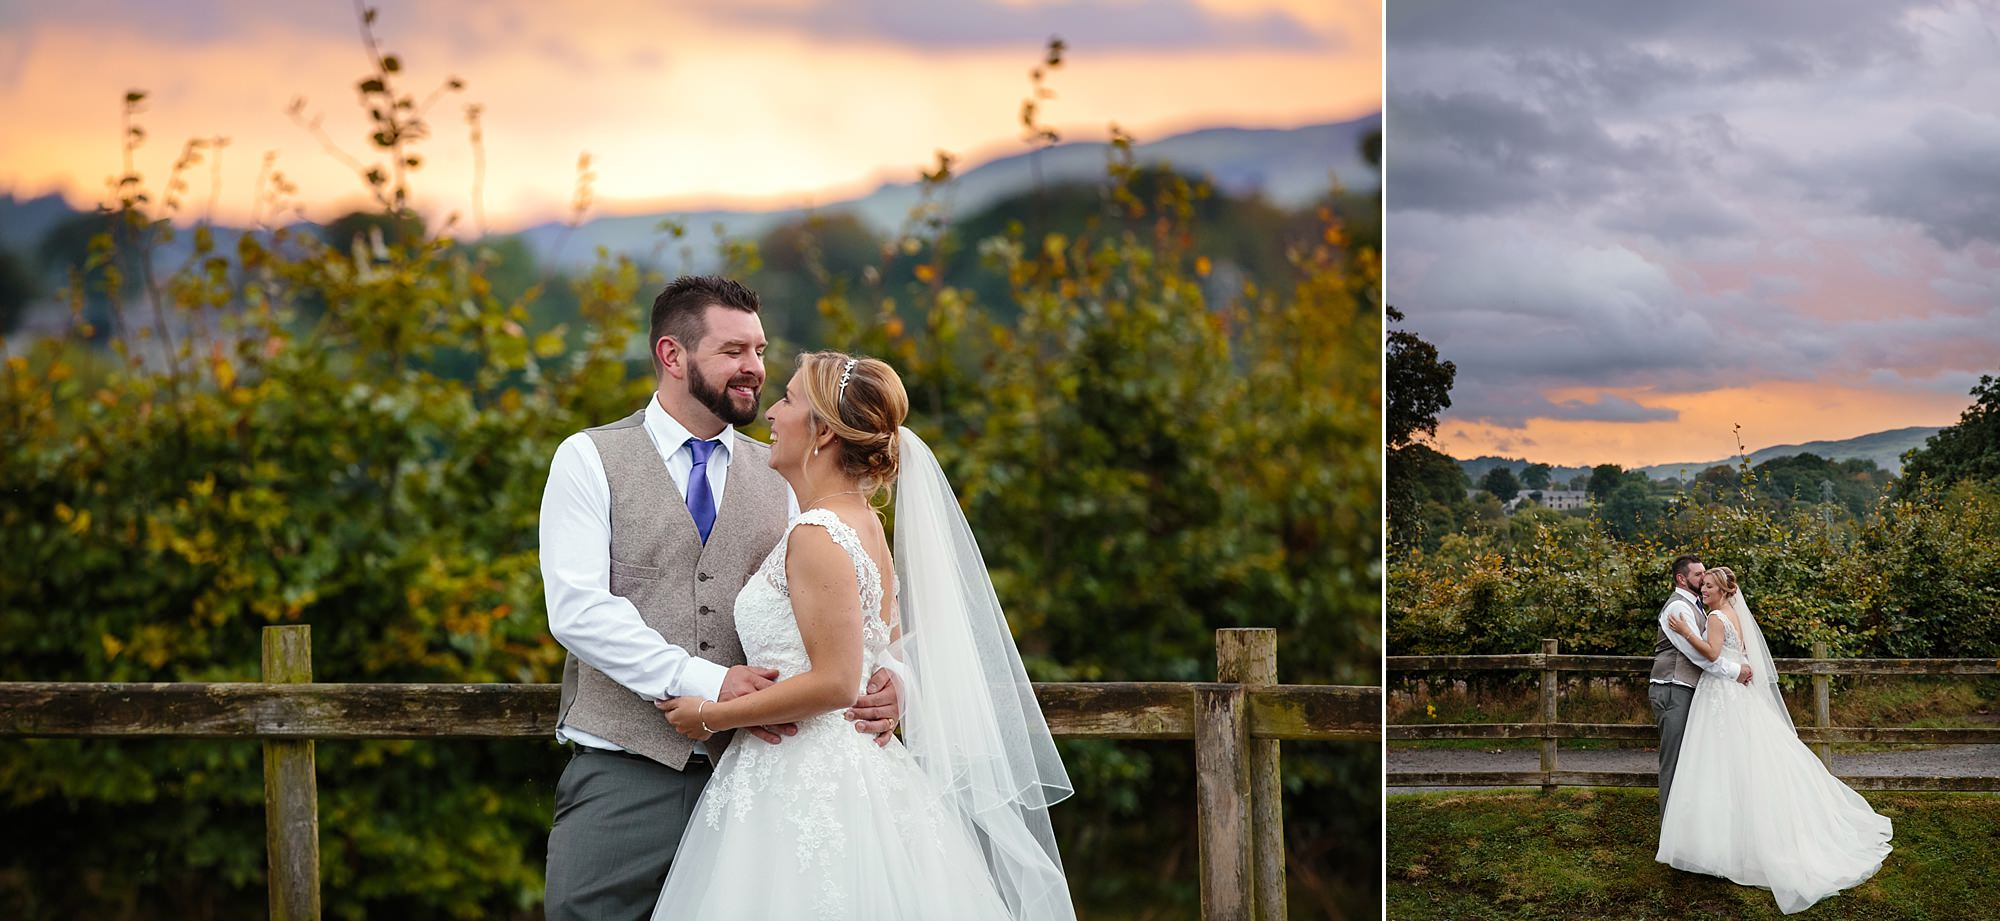 A fun wedding at play Isaf bride and groom at sunset